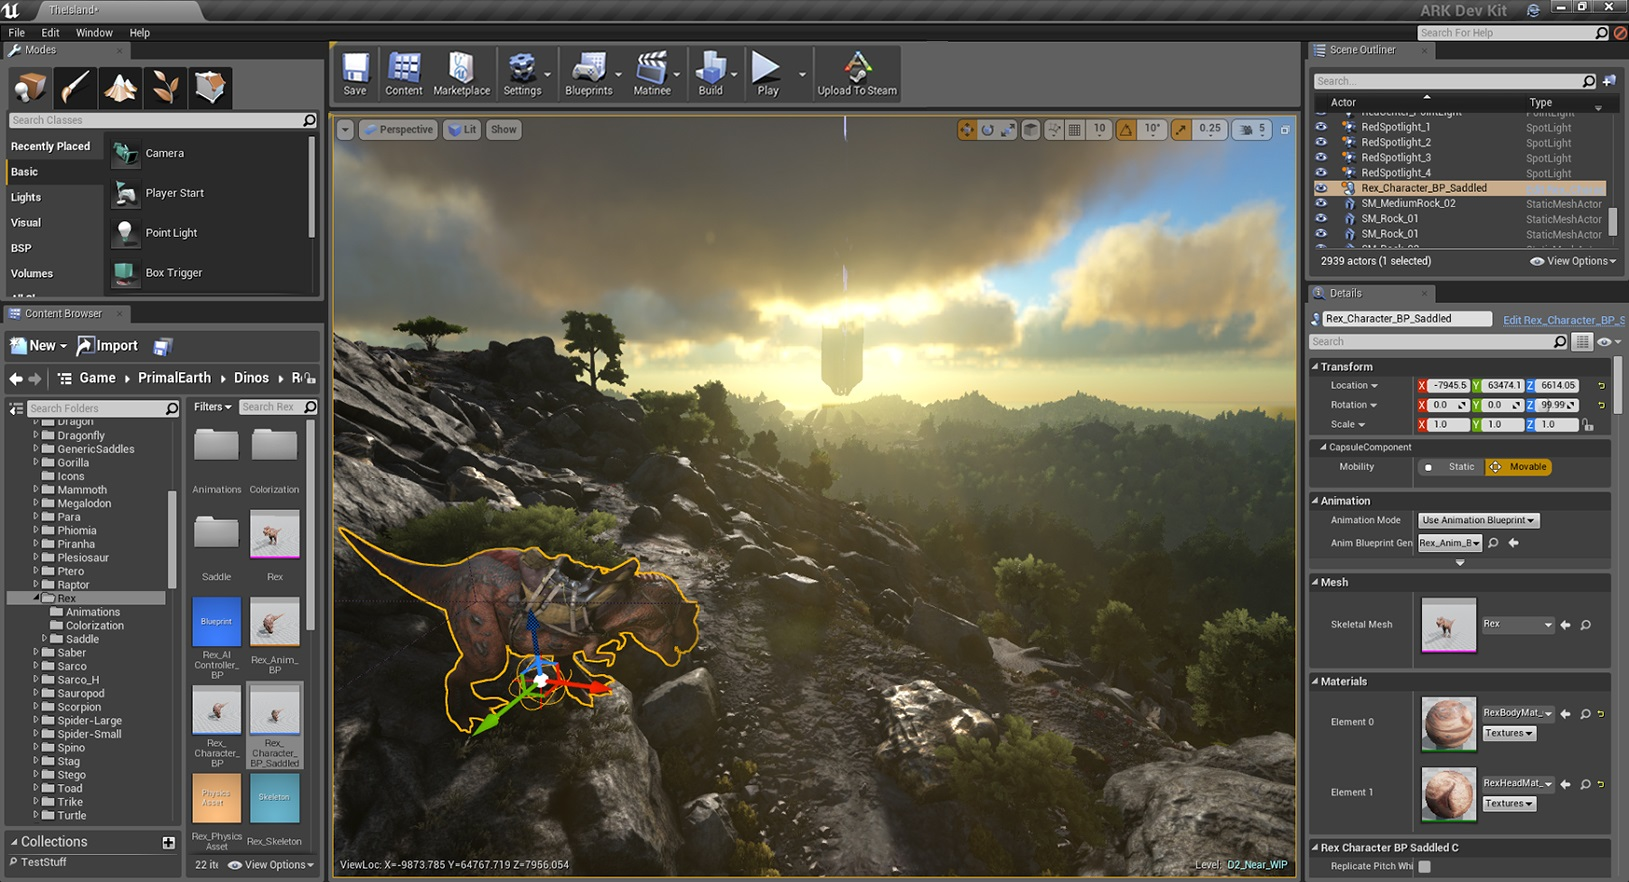 Ark survival evolved now open to unreal engine 4 modding mmohuts ark survival evolved now open to unreal engine 4 modding malvernweather Gallery